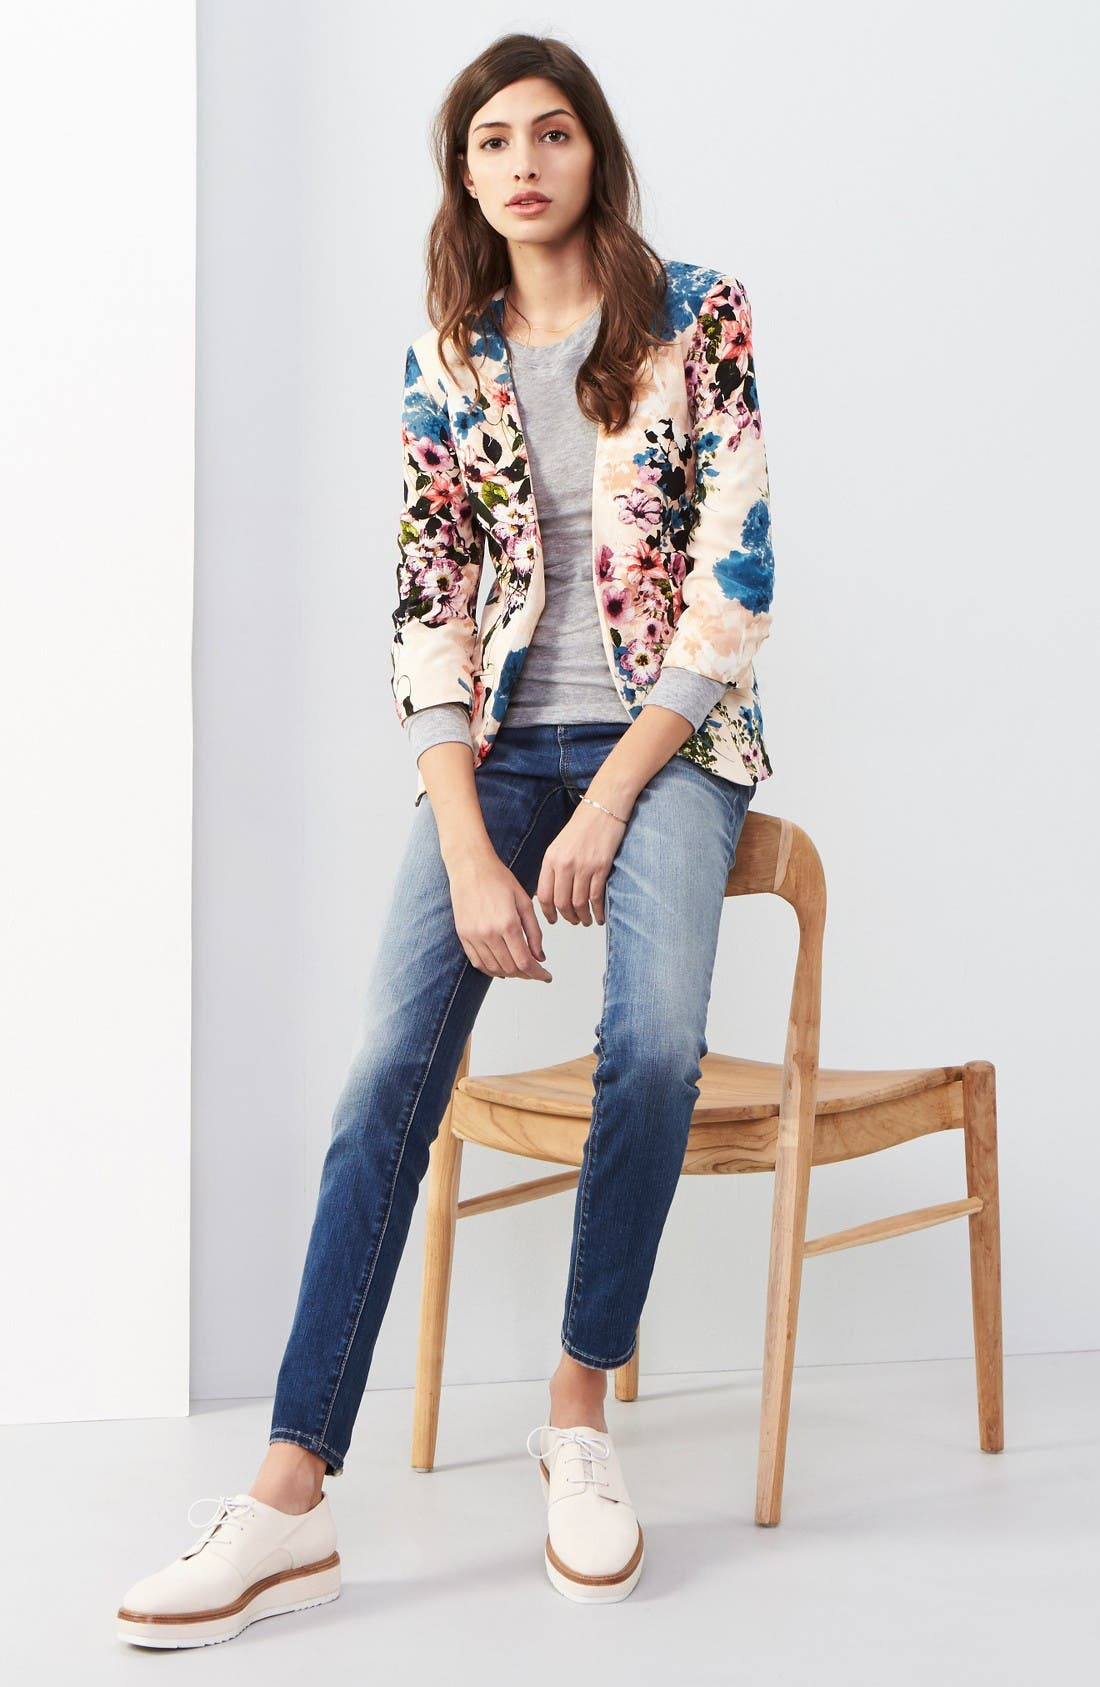 Chelsea28 Jacket, Trouvé Tee & Treasure&Bond Jeans Outfit with Accessories